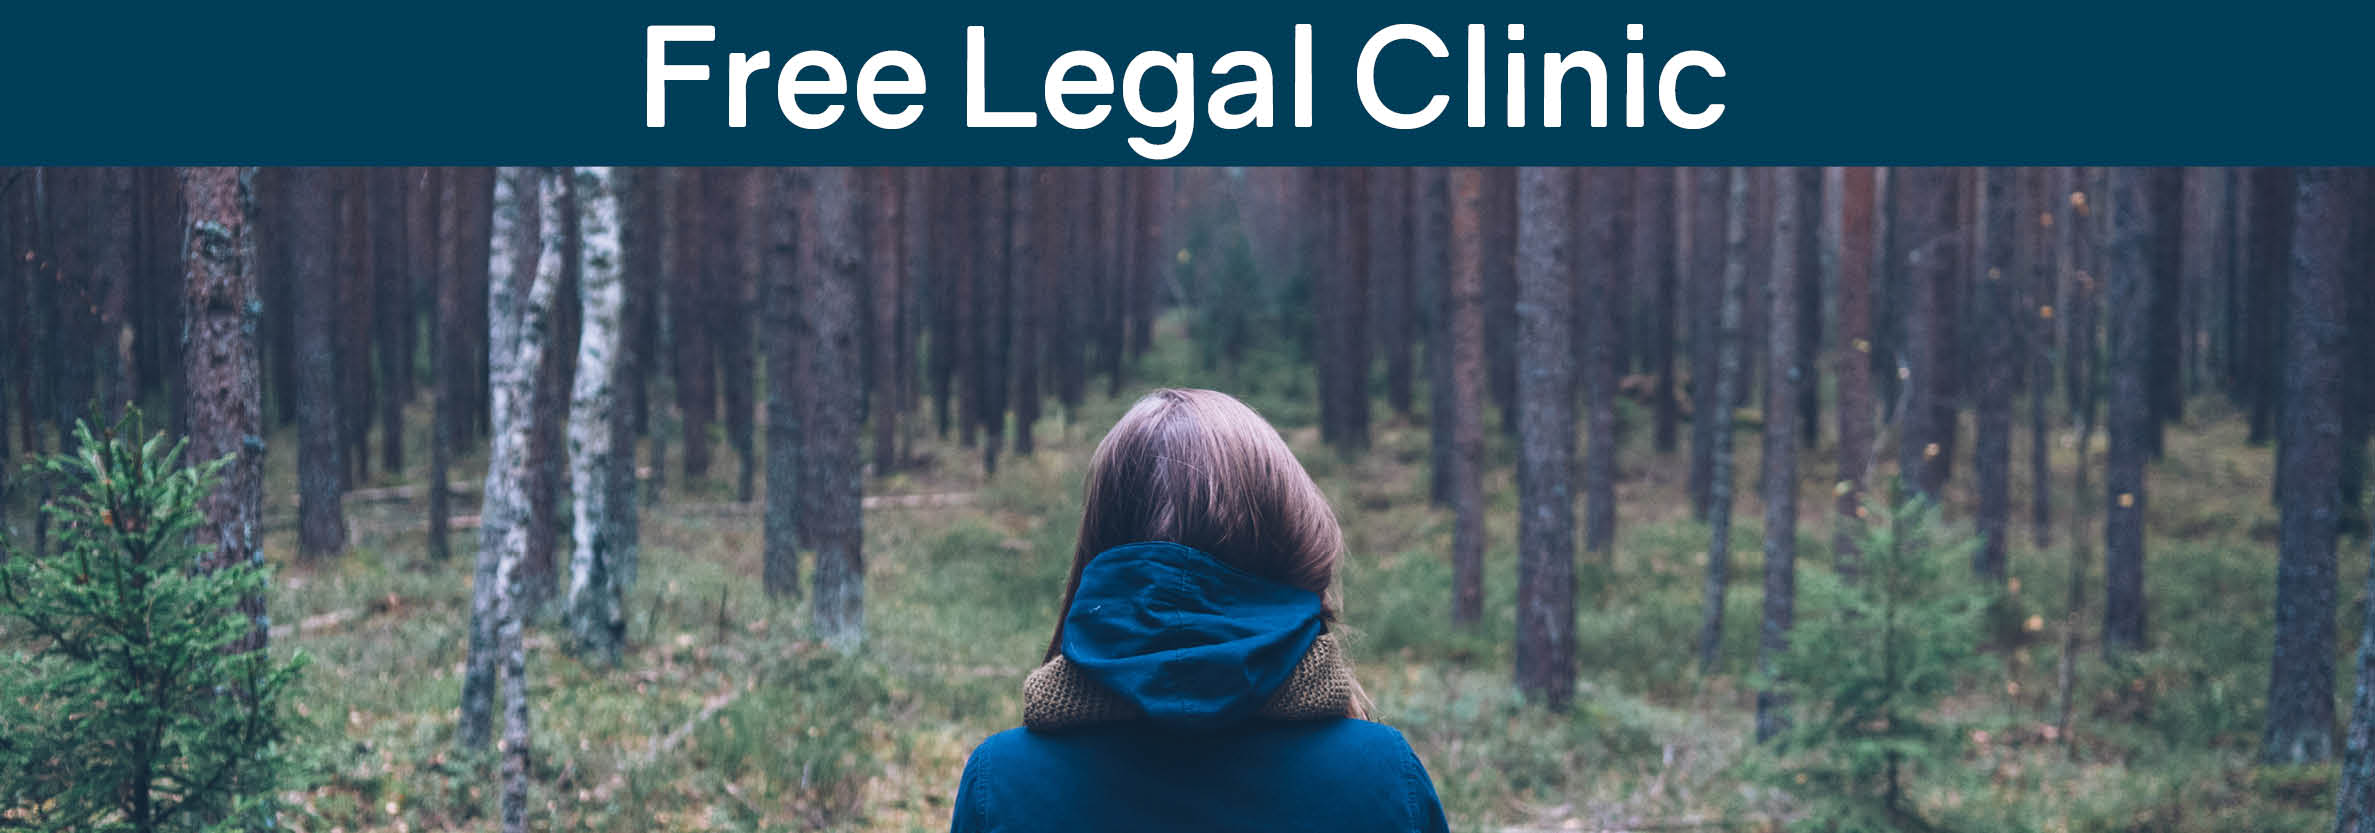 Legal Clinic Blog Post